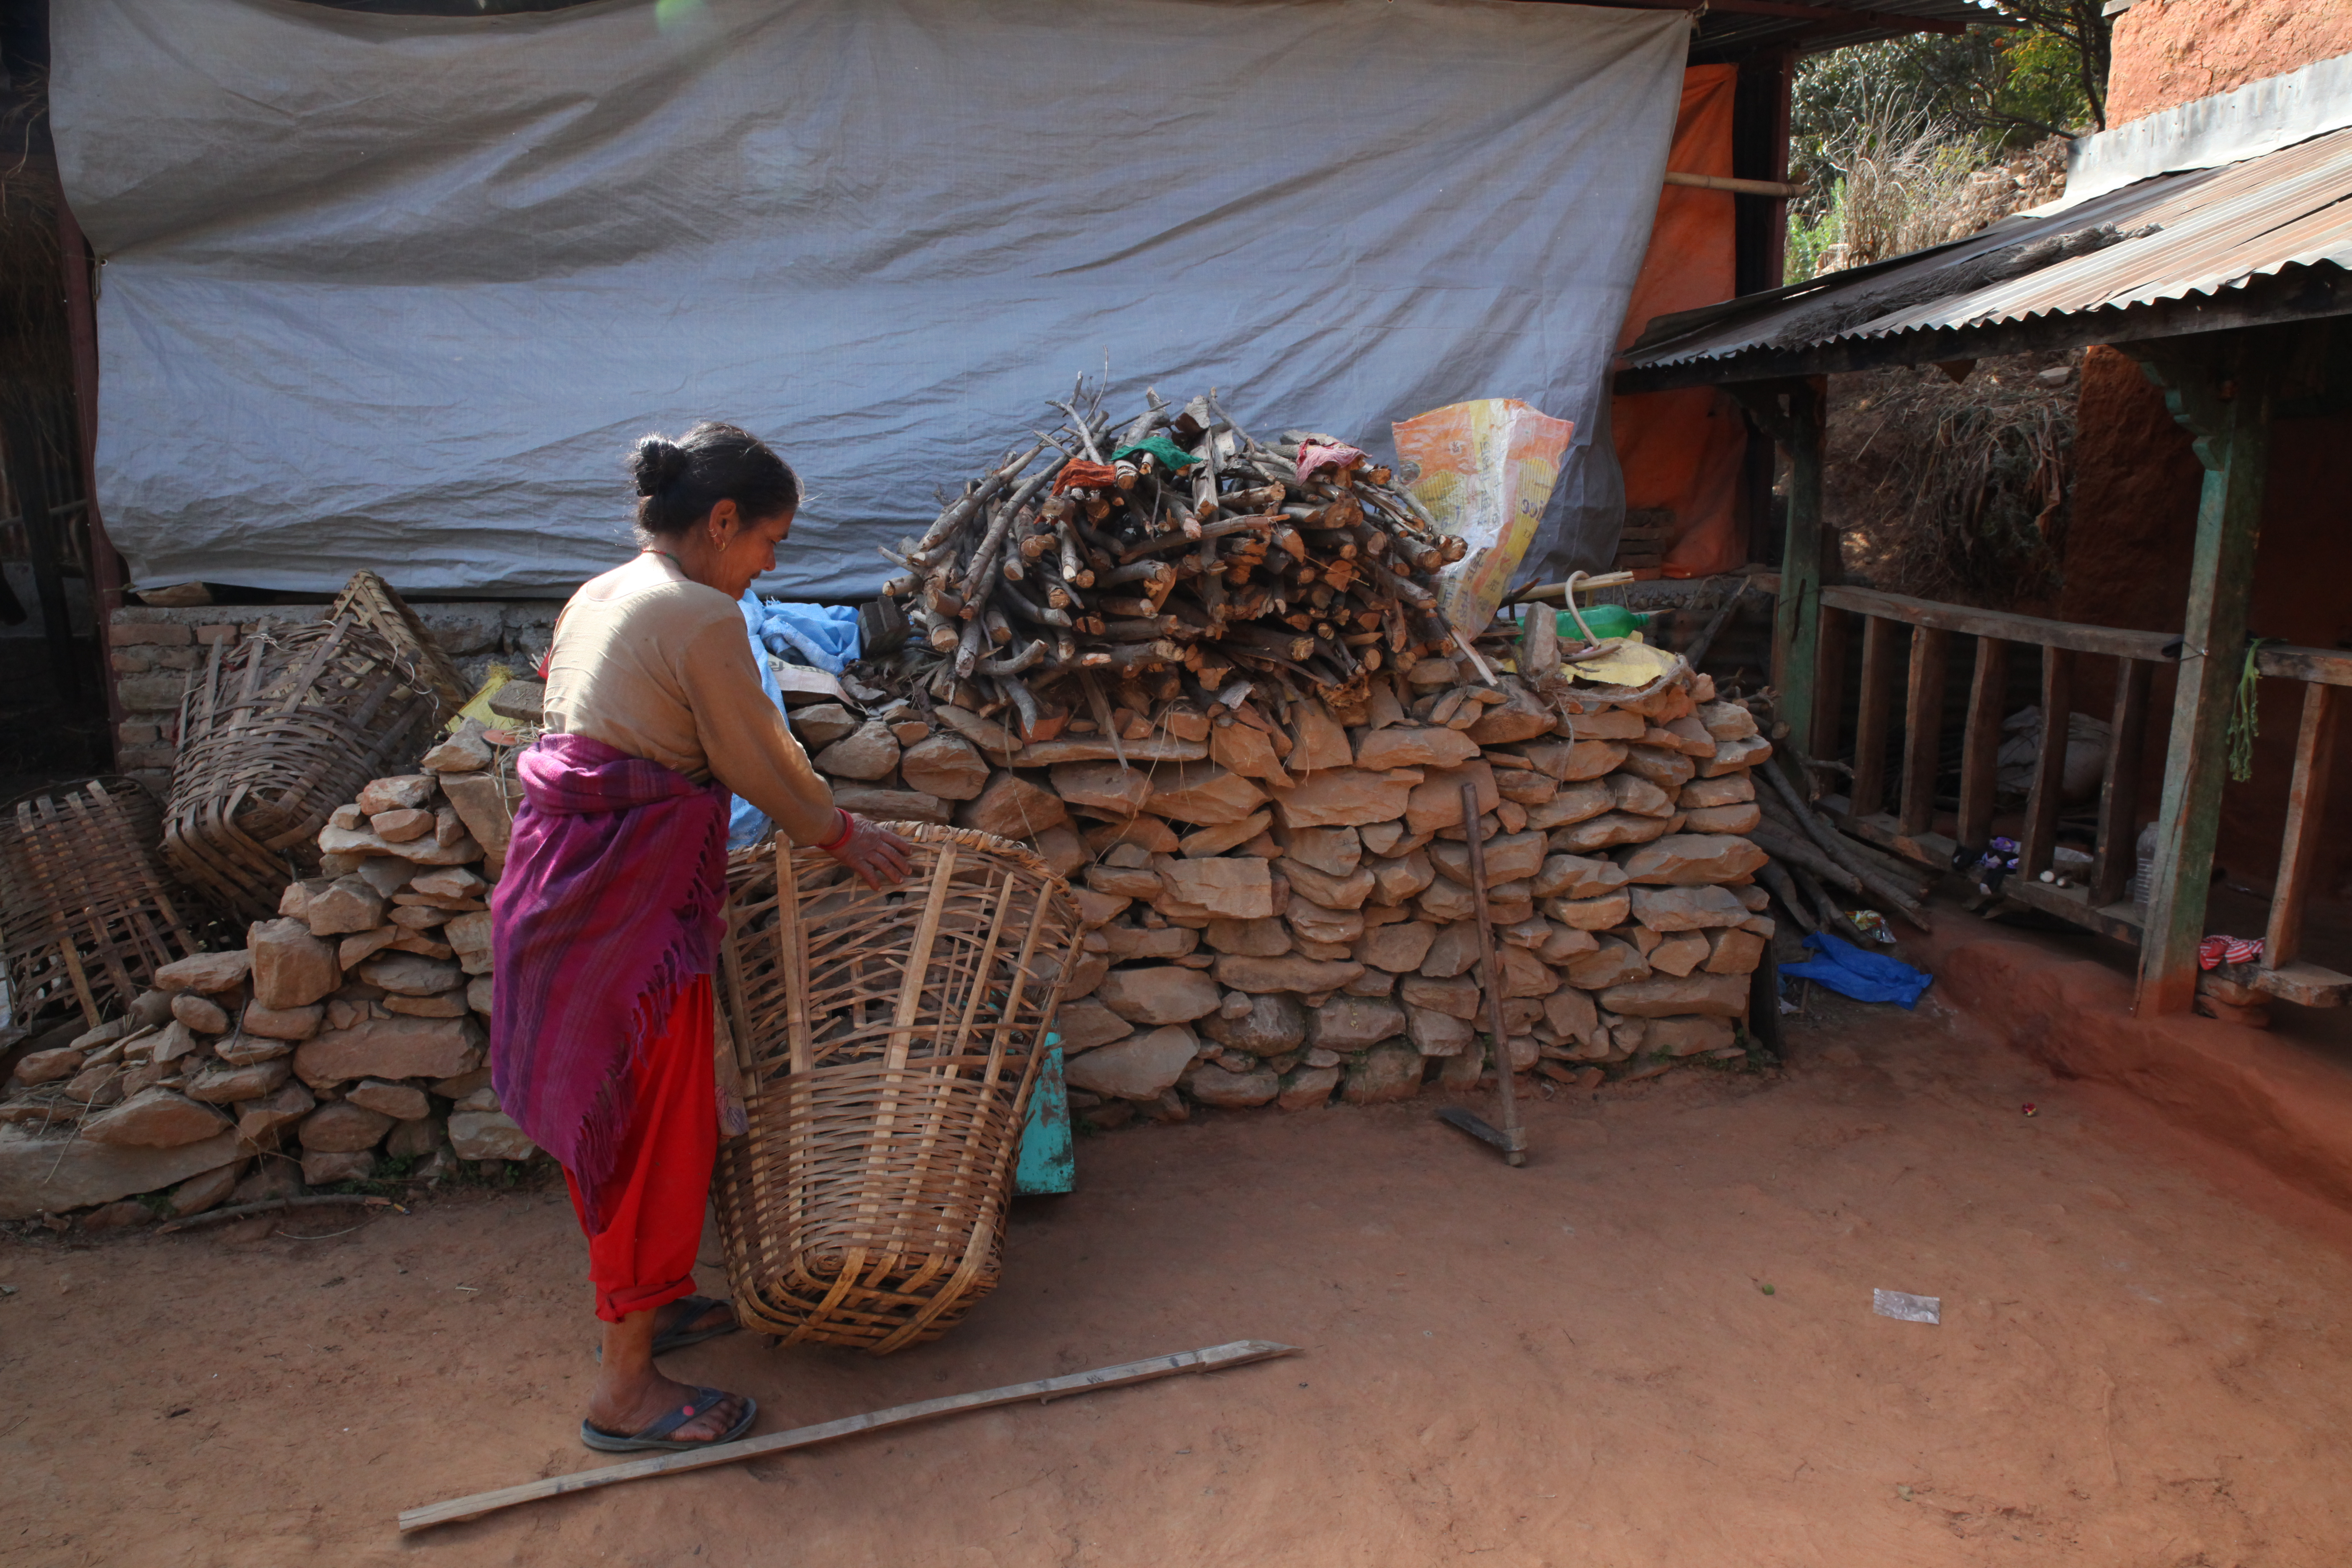 Chini Khadka arranges firewood at her small cattle farm on a remote hilltop in Bhimdhunga, Nepal, Feb. 9, 2018.